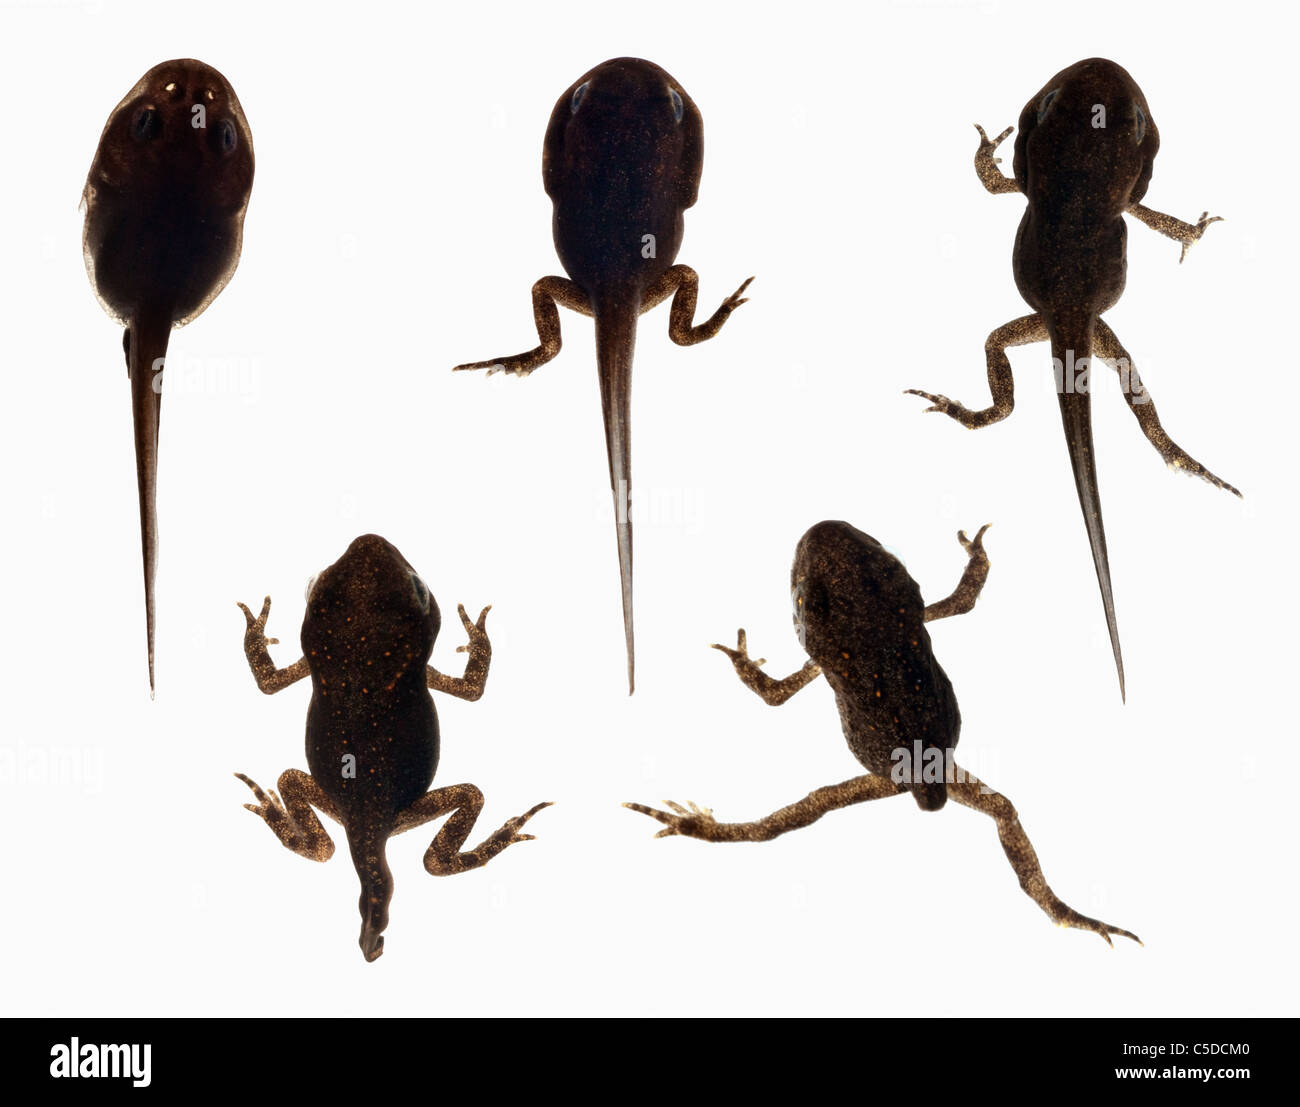 Sequential development of a frog from tadpole to adult for Frog transformation